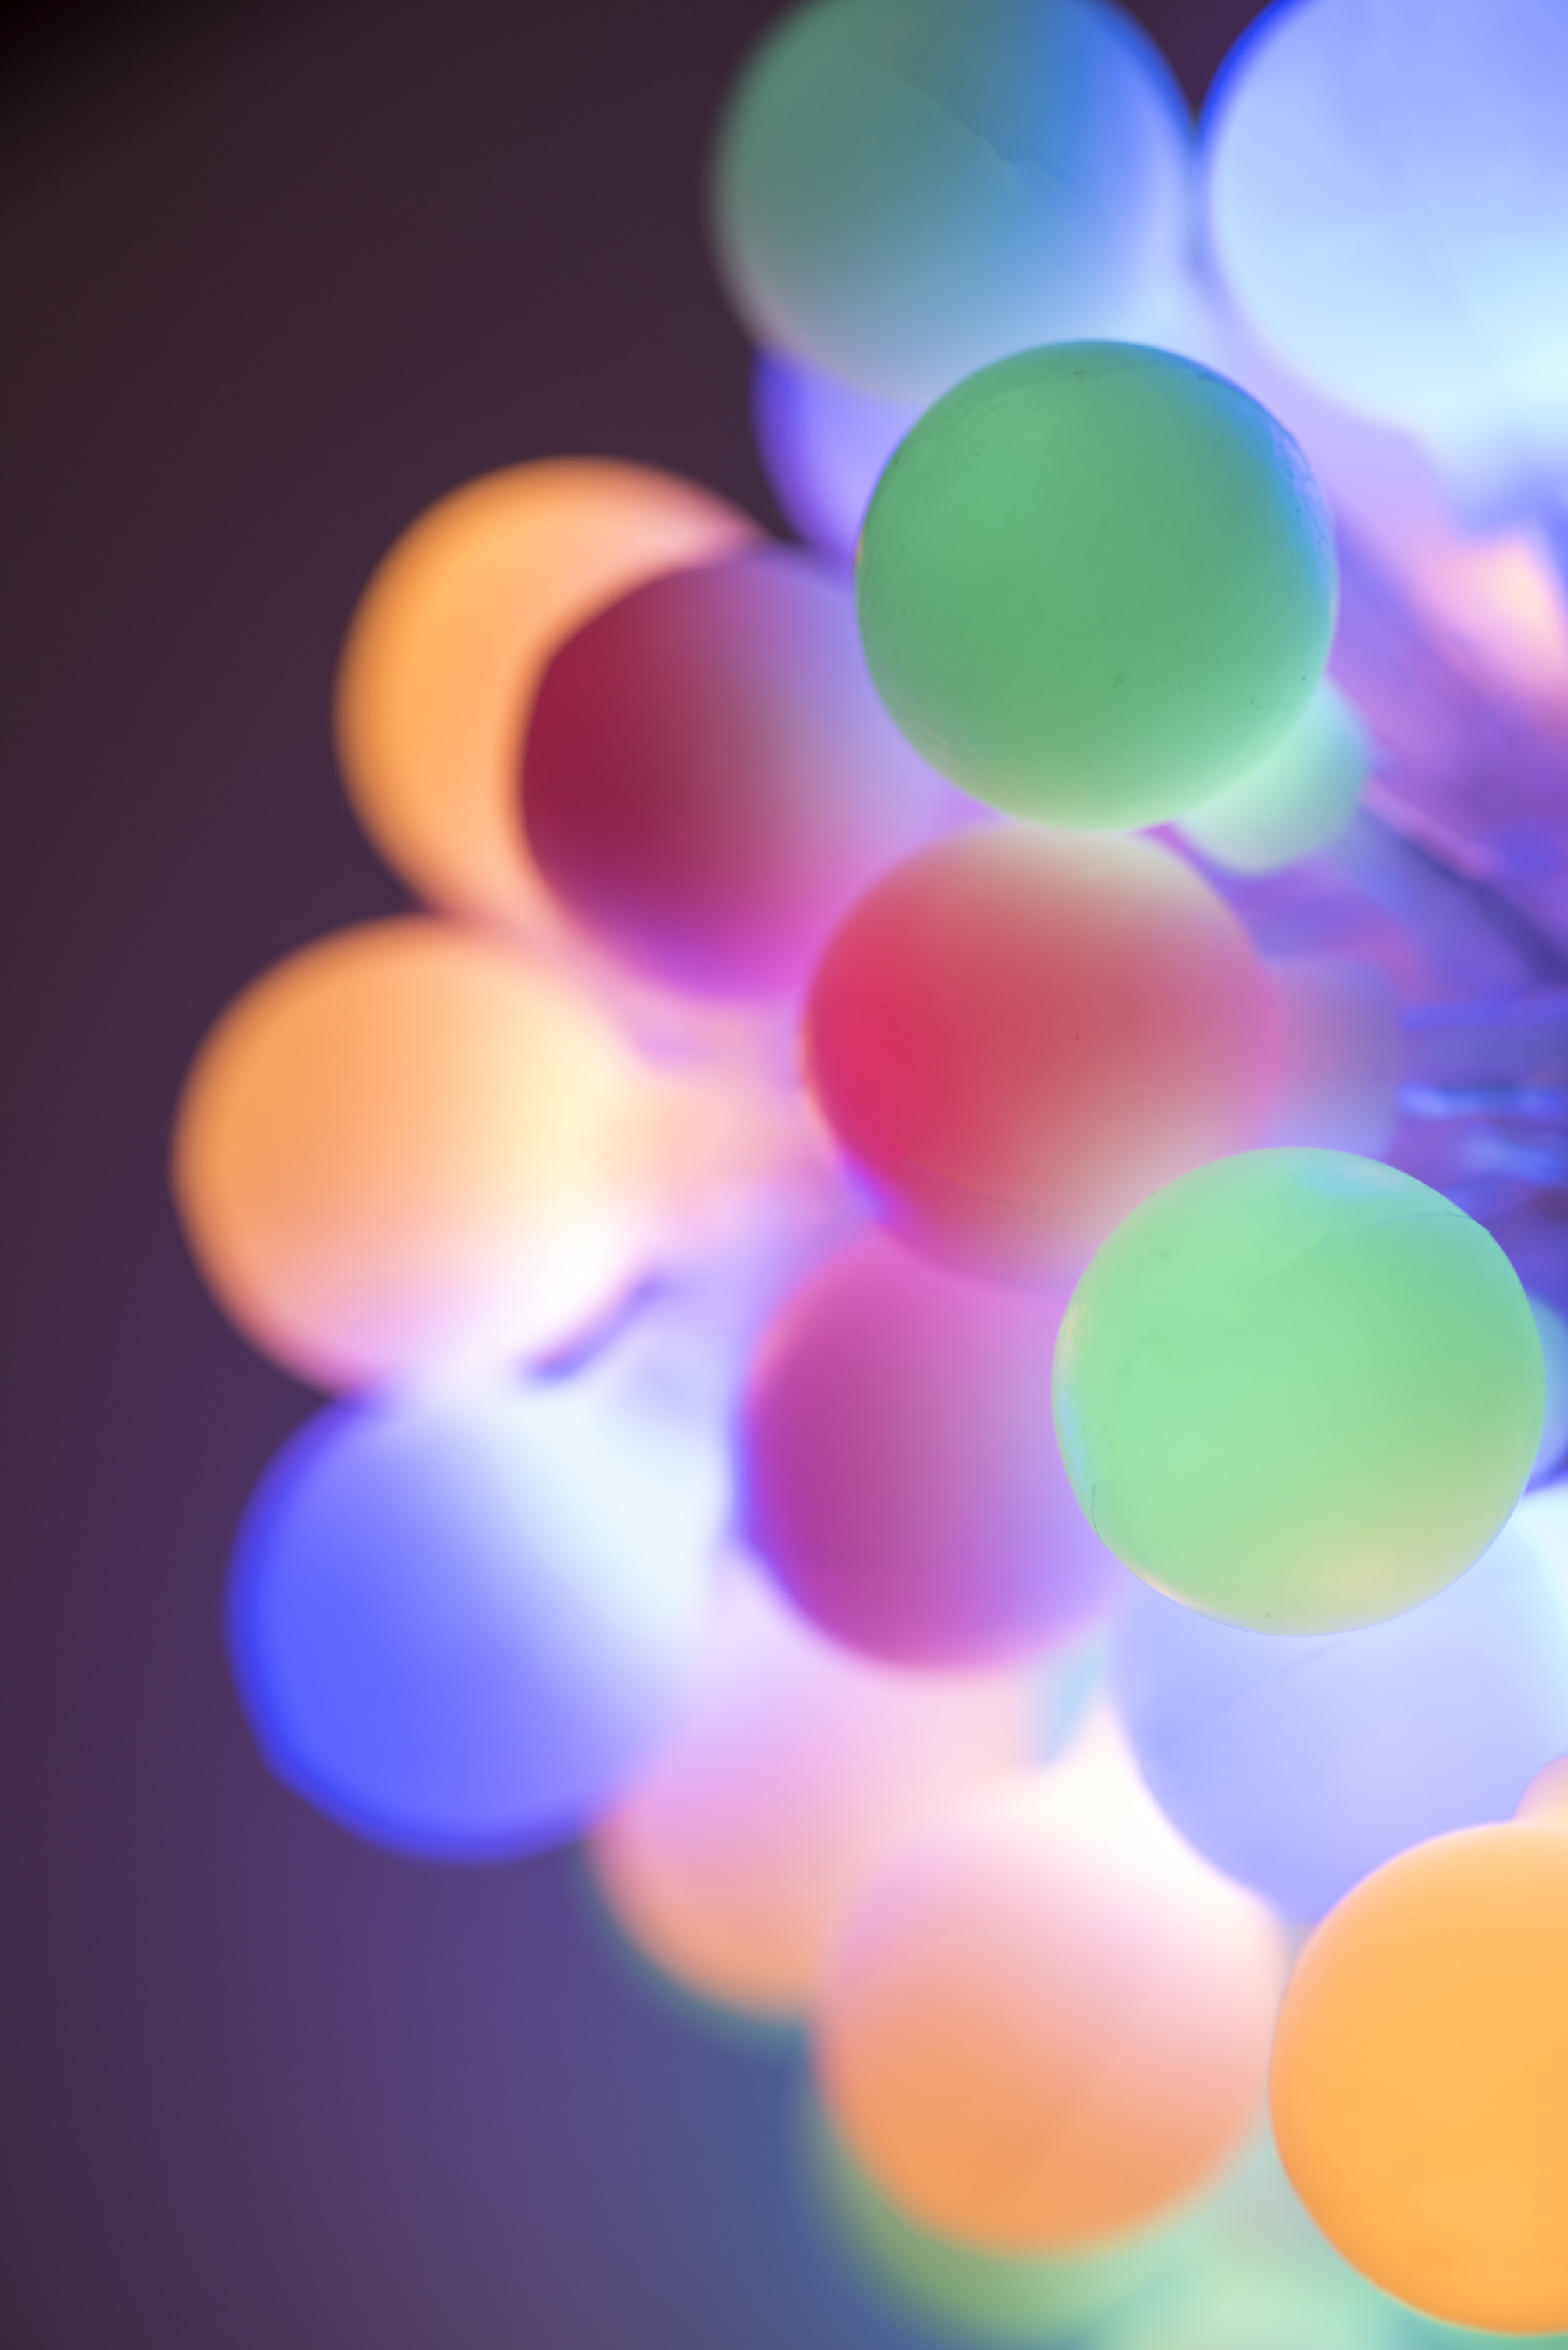 Free Stock Photo 13120 Colorful bundle of round Christmas lights ...